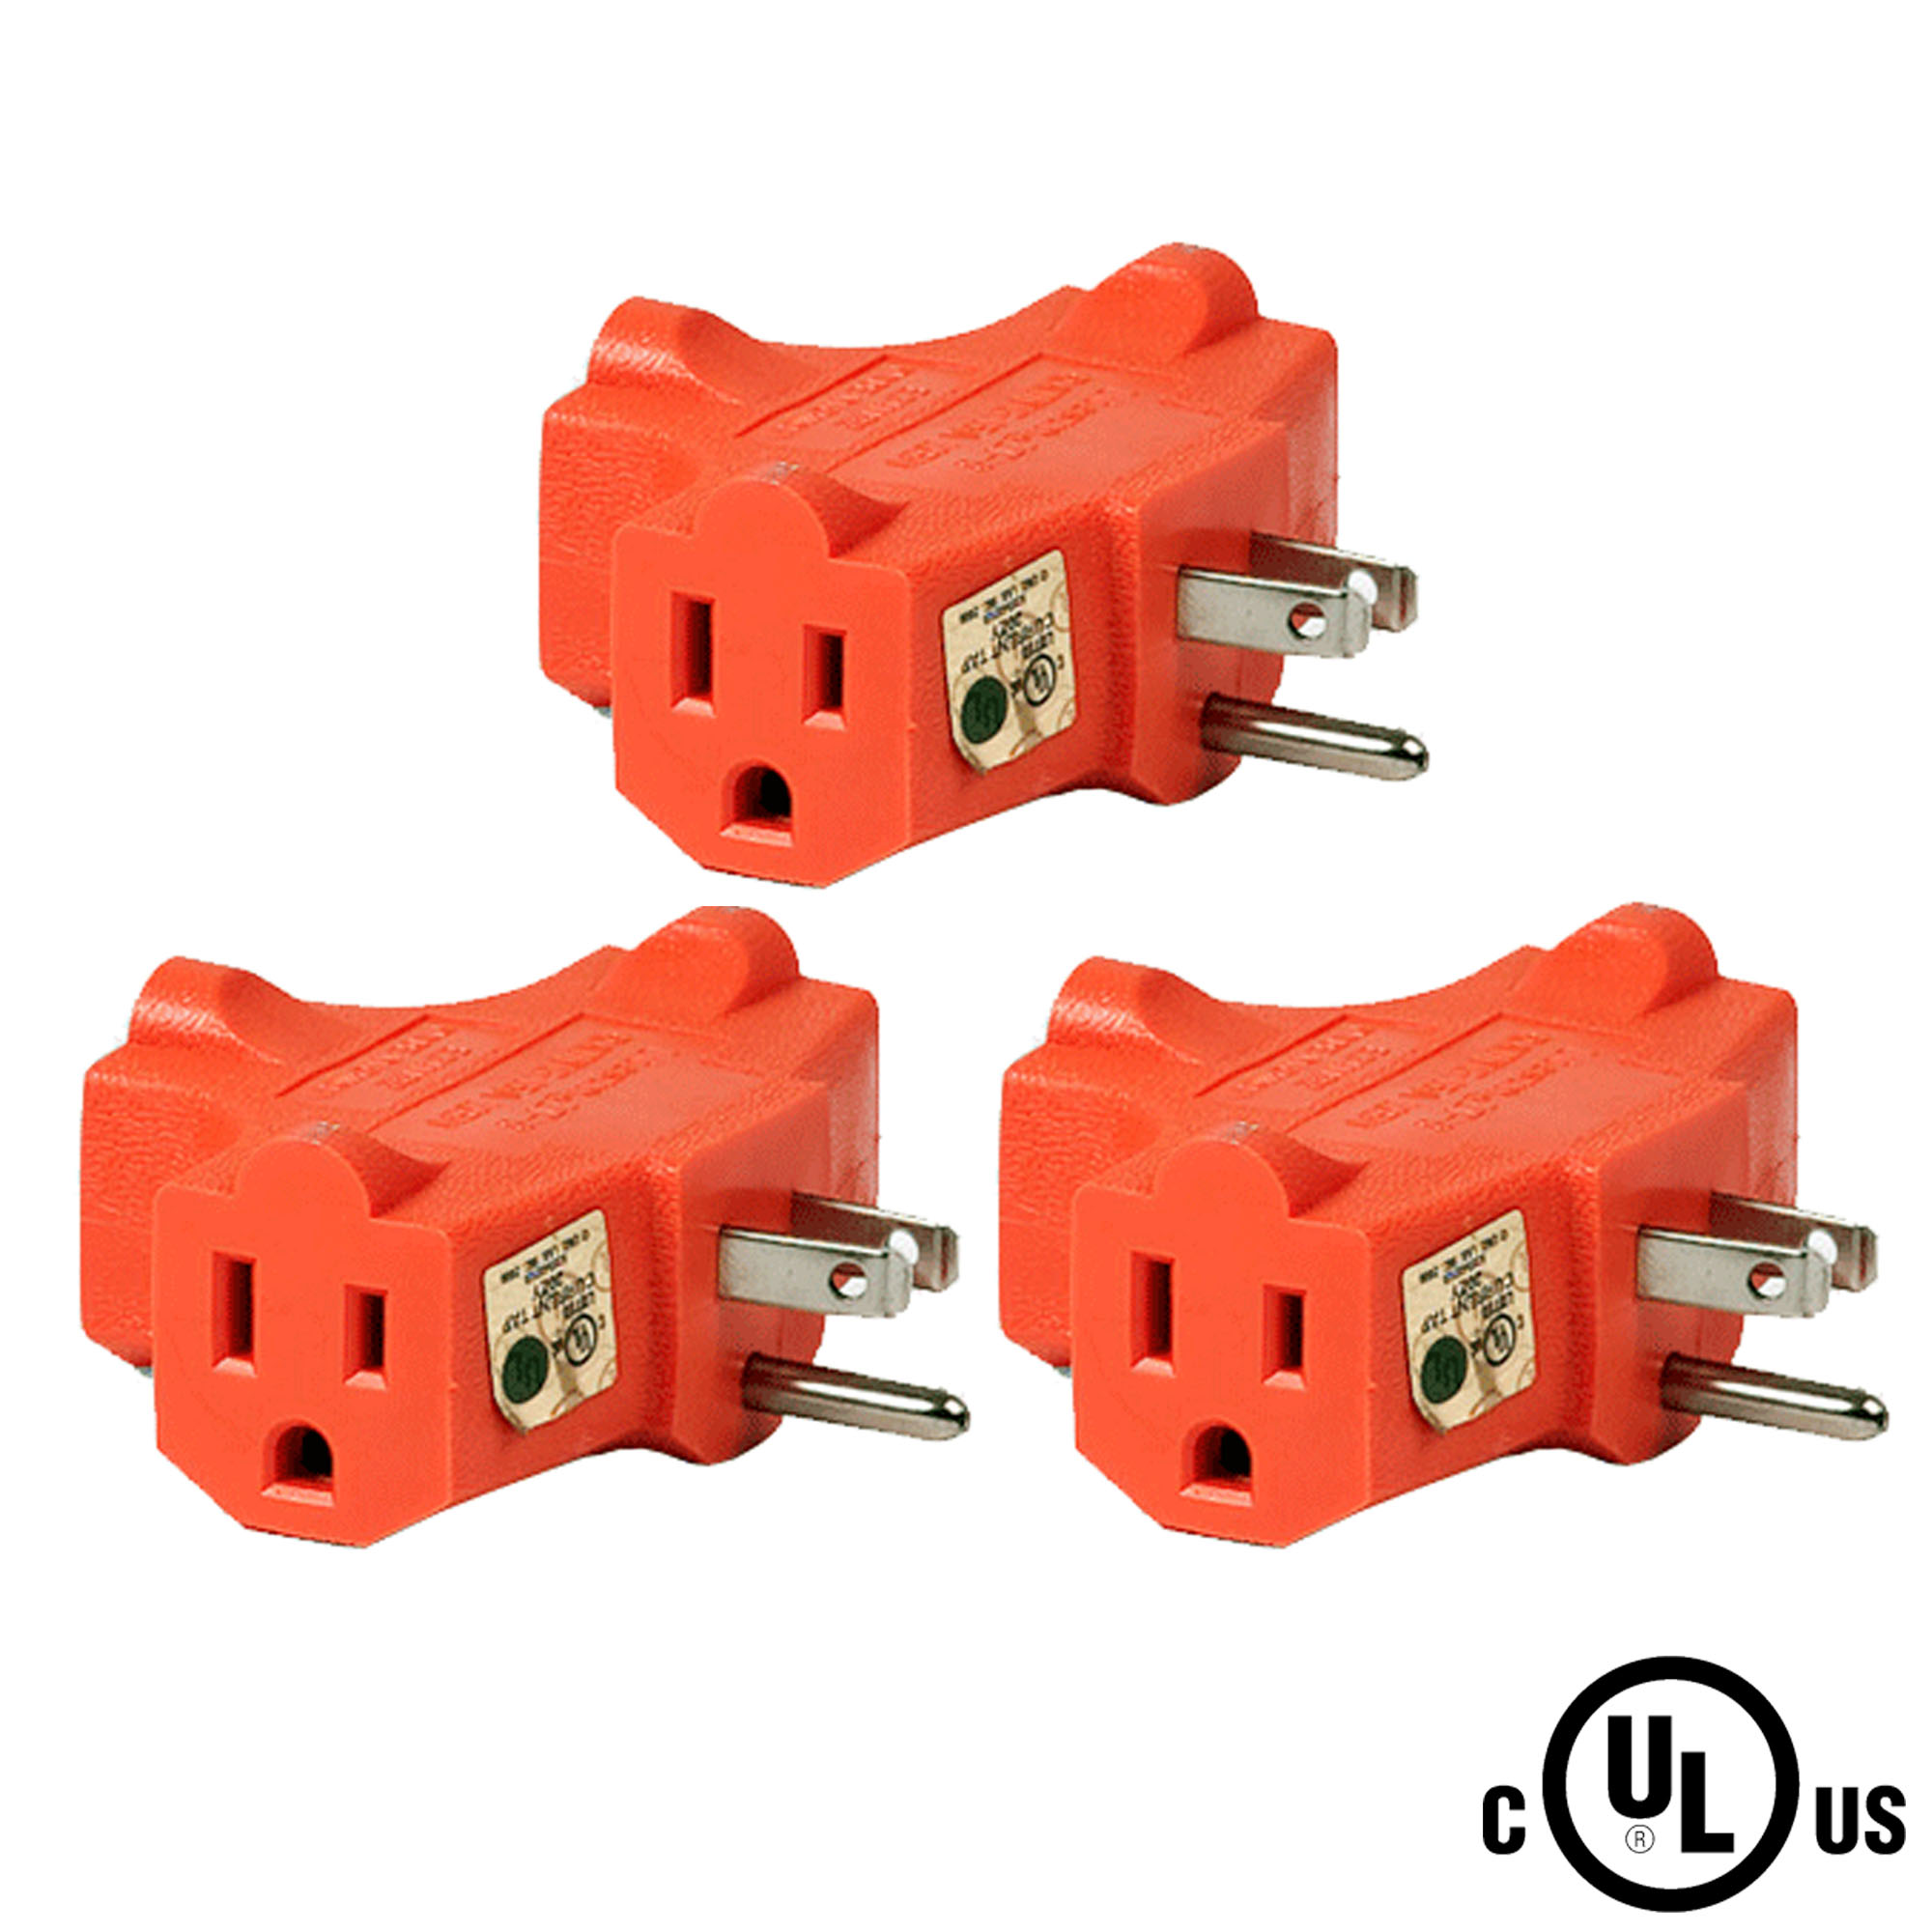 (3-Pack) Uninex T-shape Triple (3) Outlet Heavy Duty Grounded Wall Plug Tap Adapter Orange